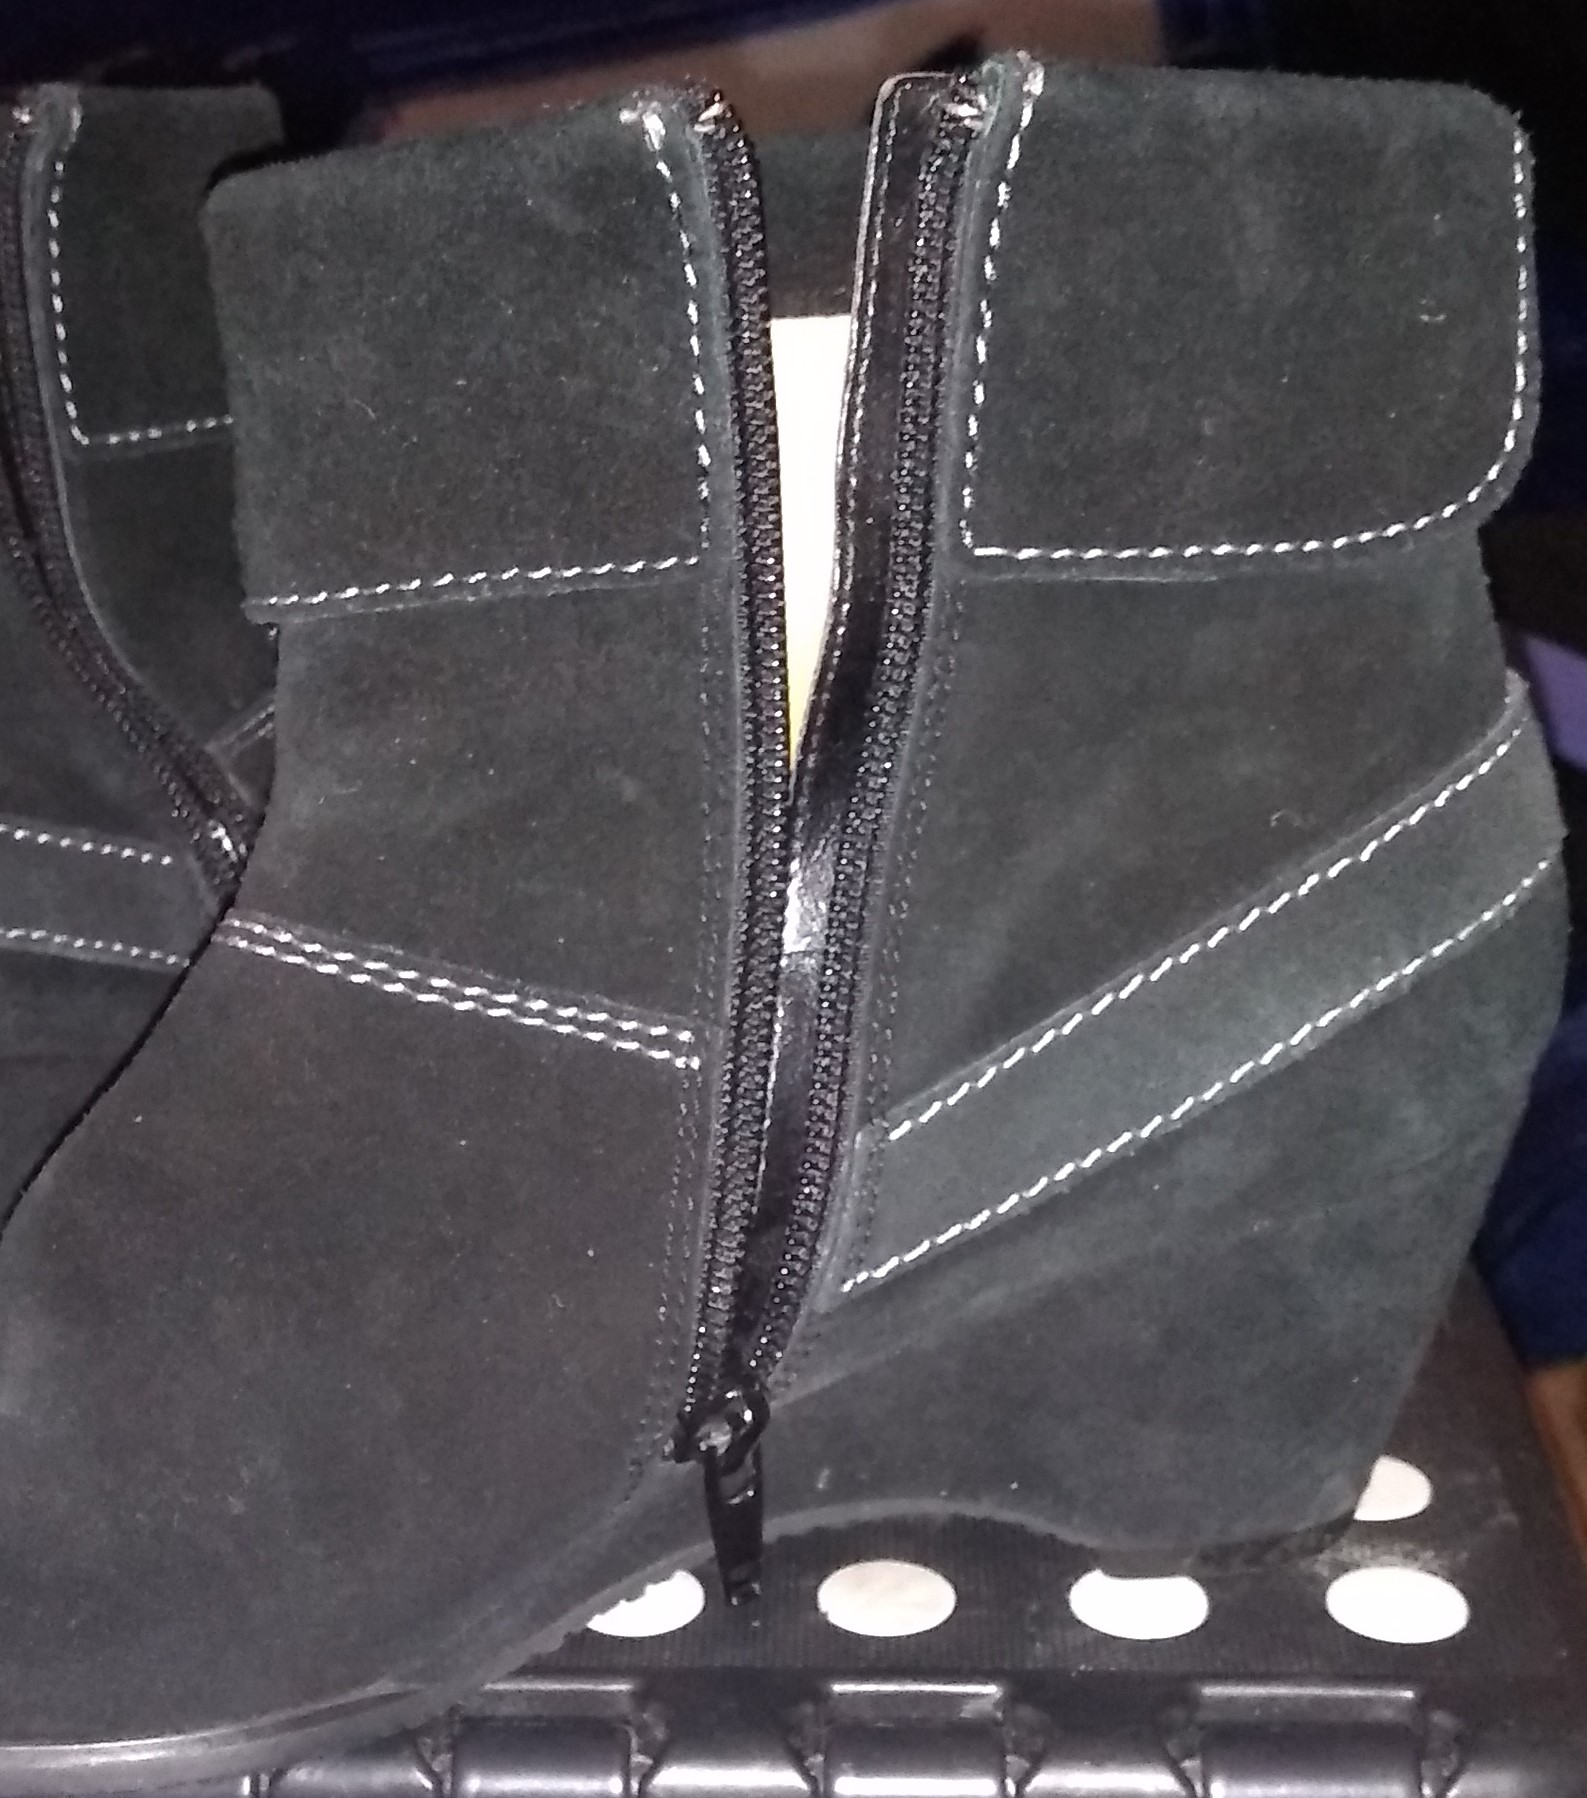 WOMEN'S ANKLE BOOT - $5